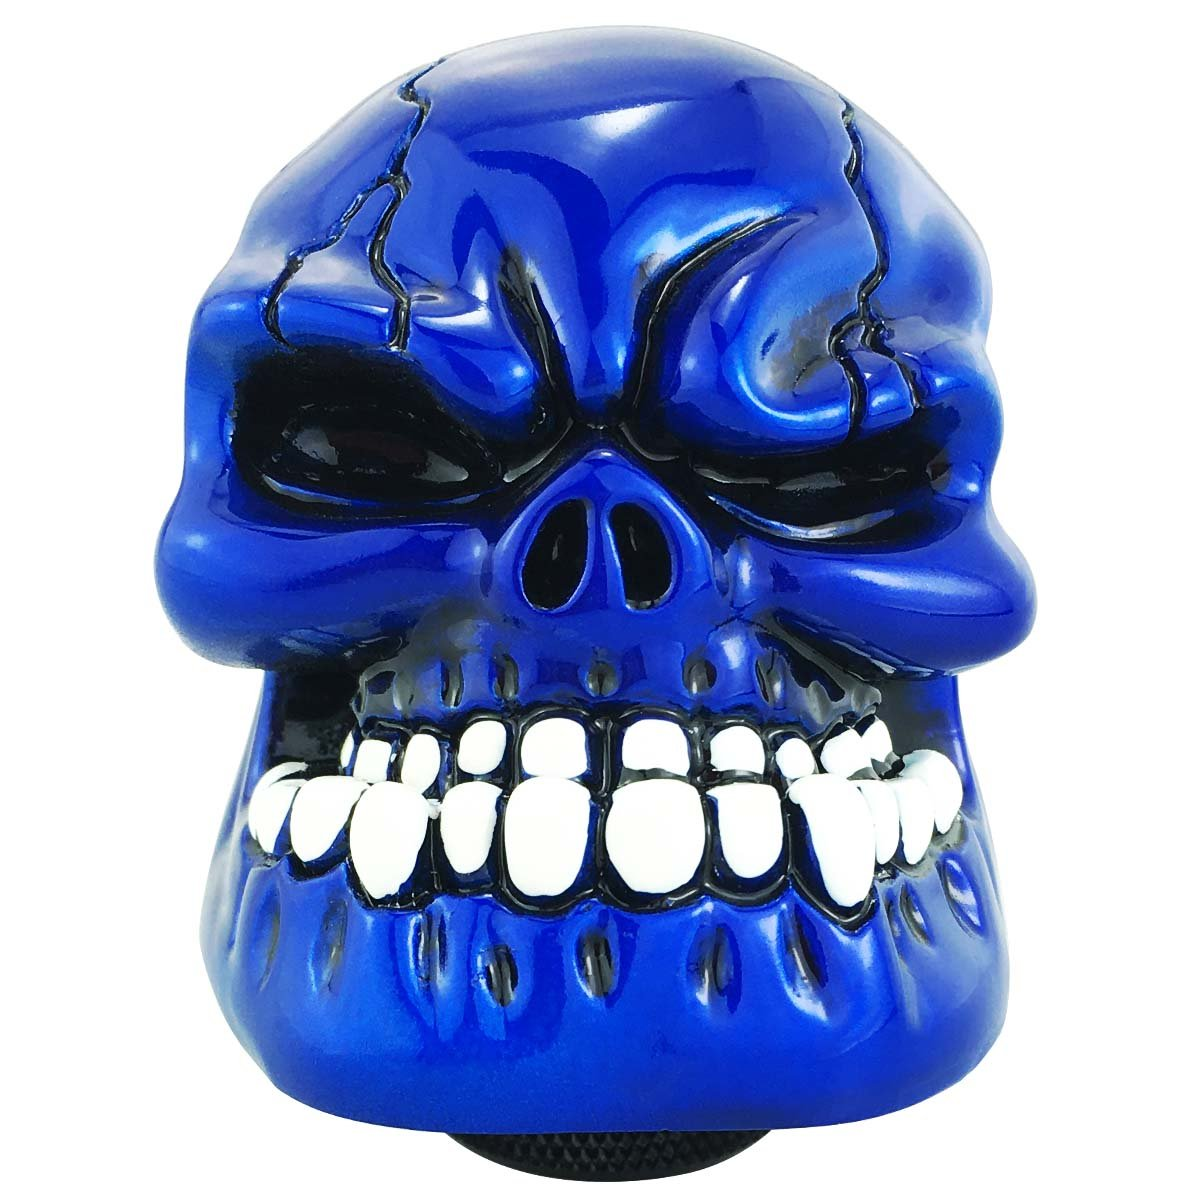 Abfer Universal Shift Knobs Skull Gear Stick Shifter Knob with Big Tooth Fit Most Automatic Manual Transmission Cars Silver